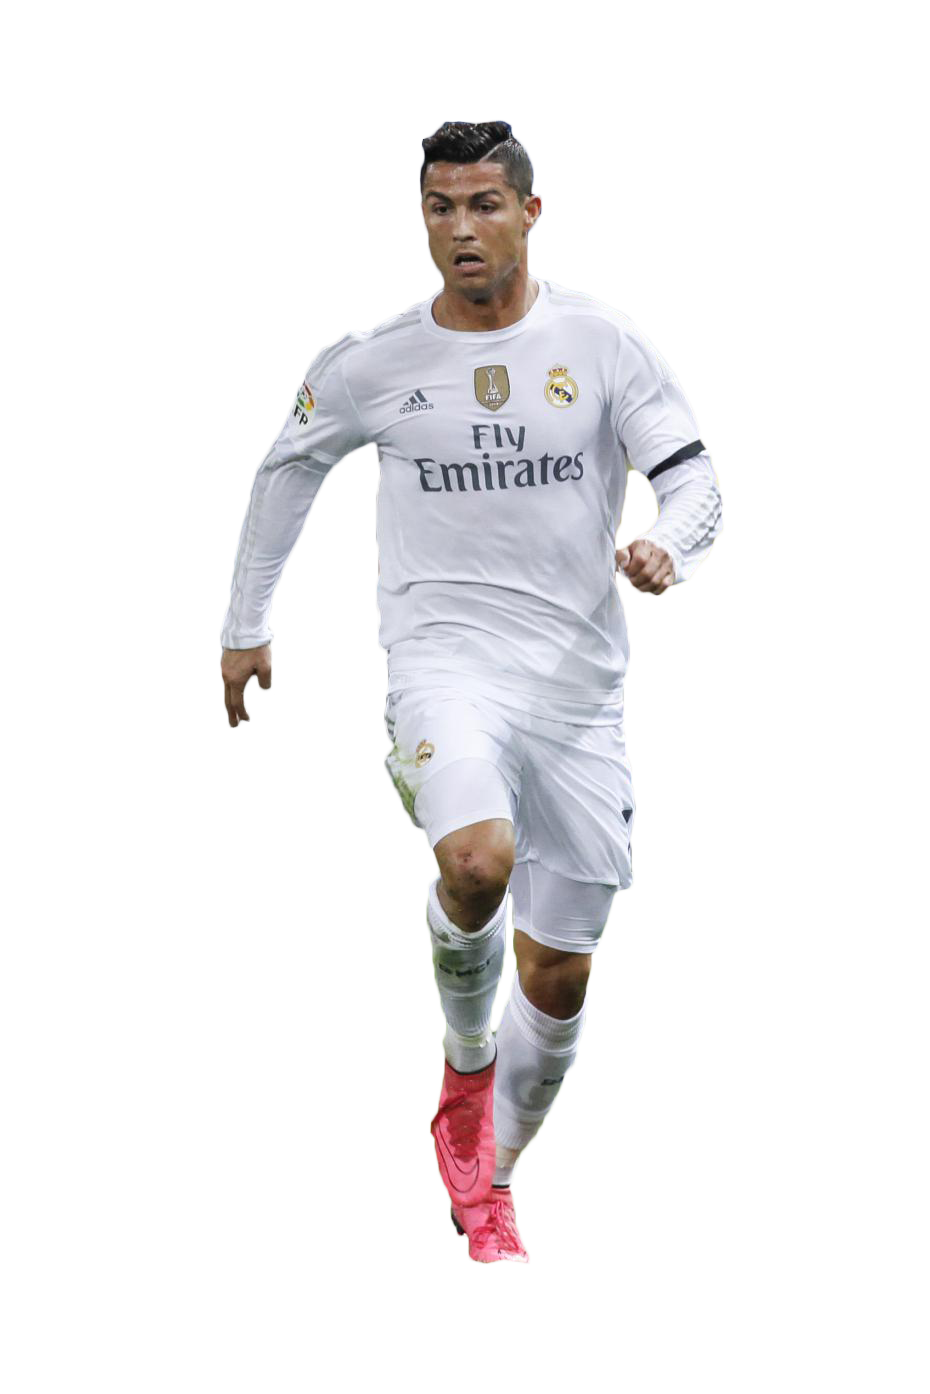 Real madrid logo photo vector wallpaper real madrid logo png - Cristiano Ronaldo By Adriandope On Deviantart